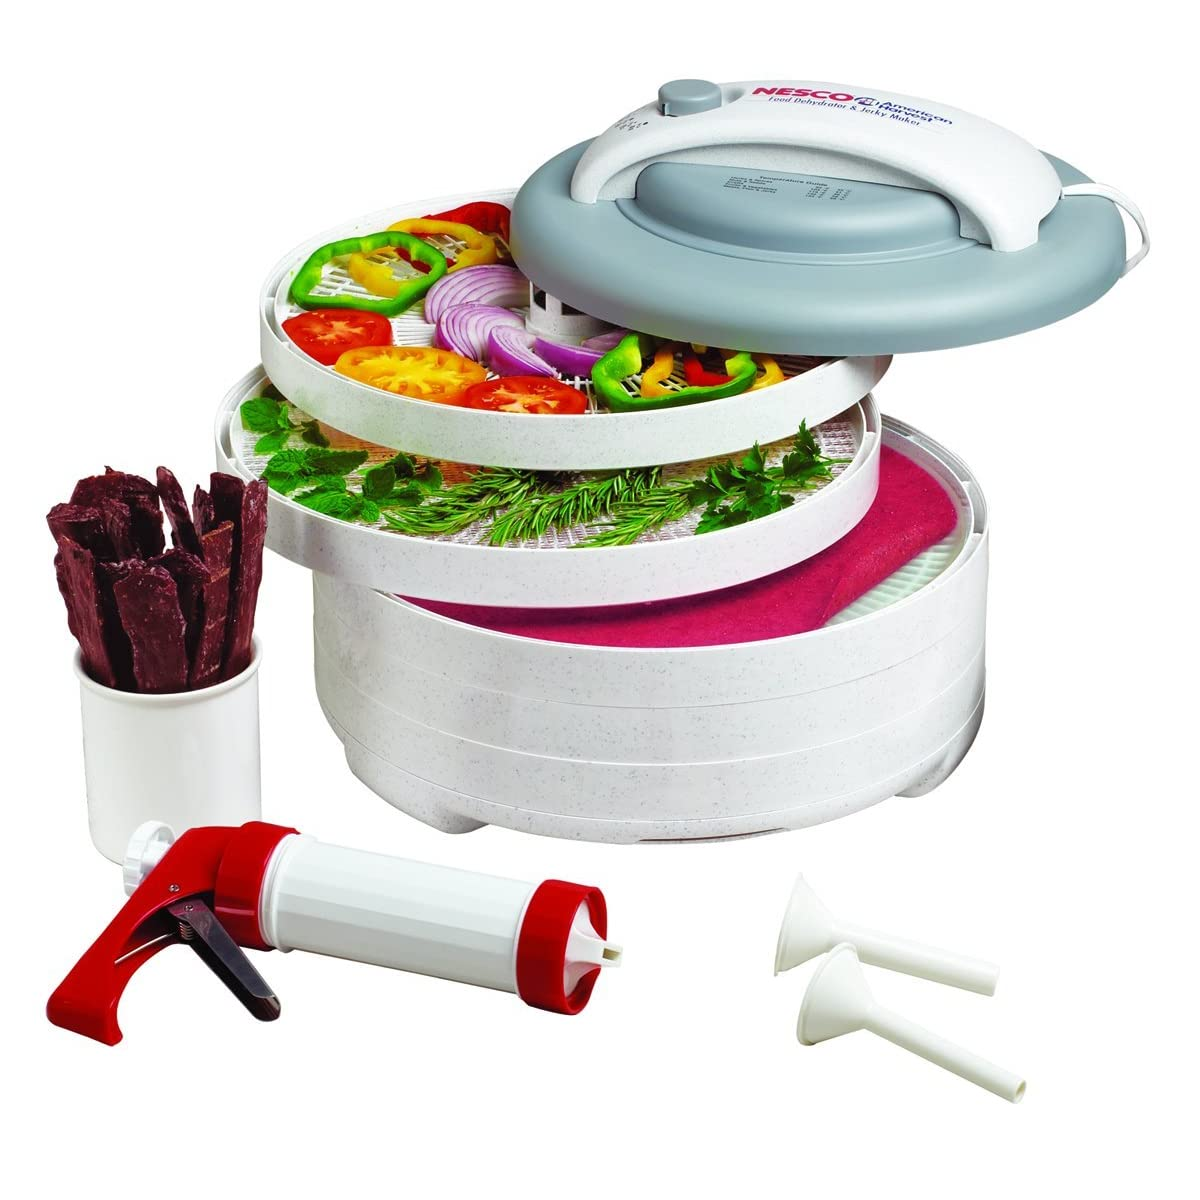 Nesco All In One Review